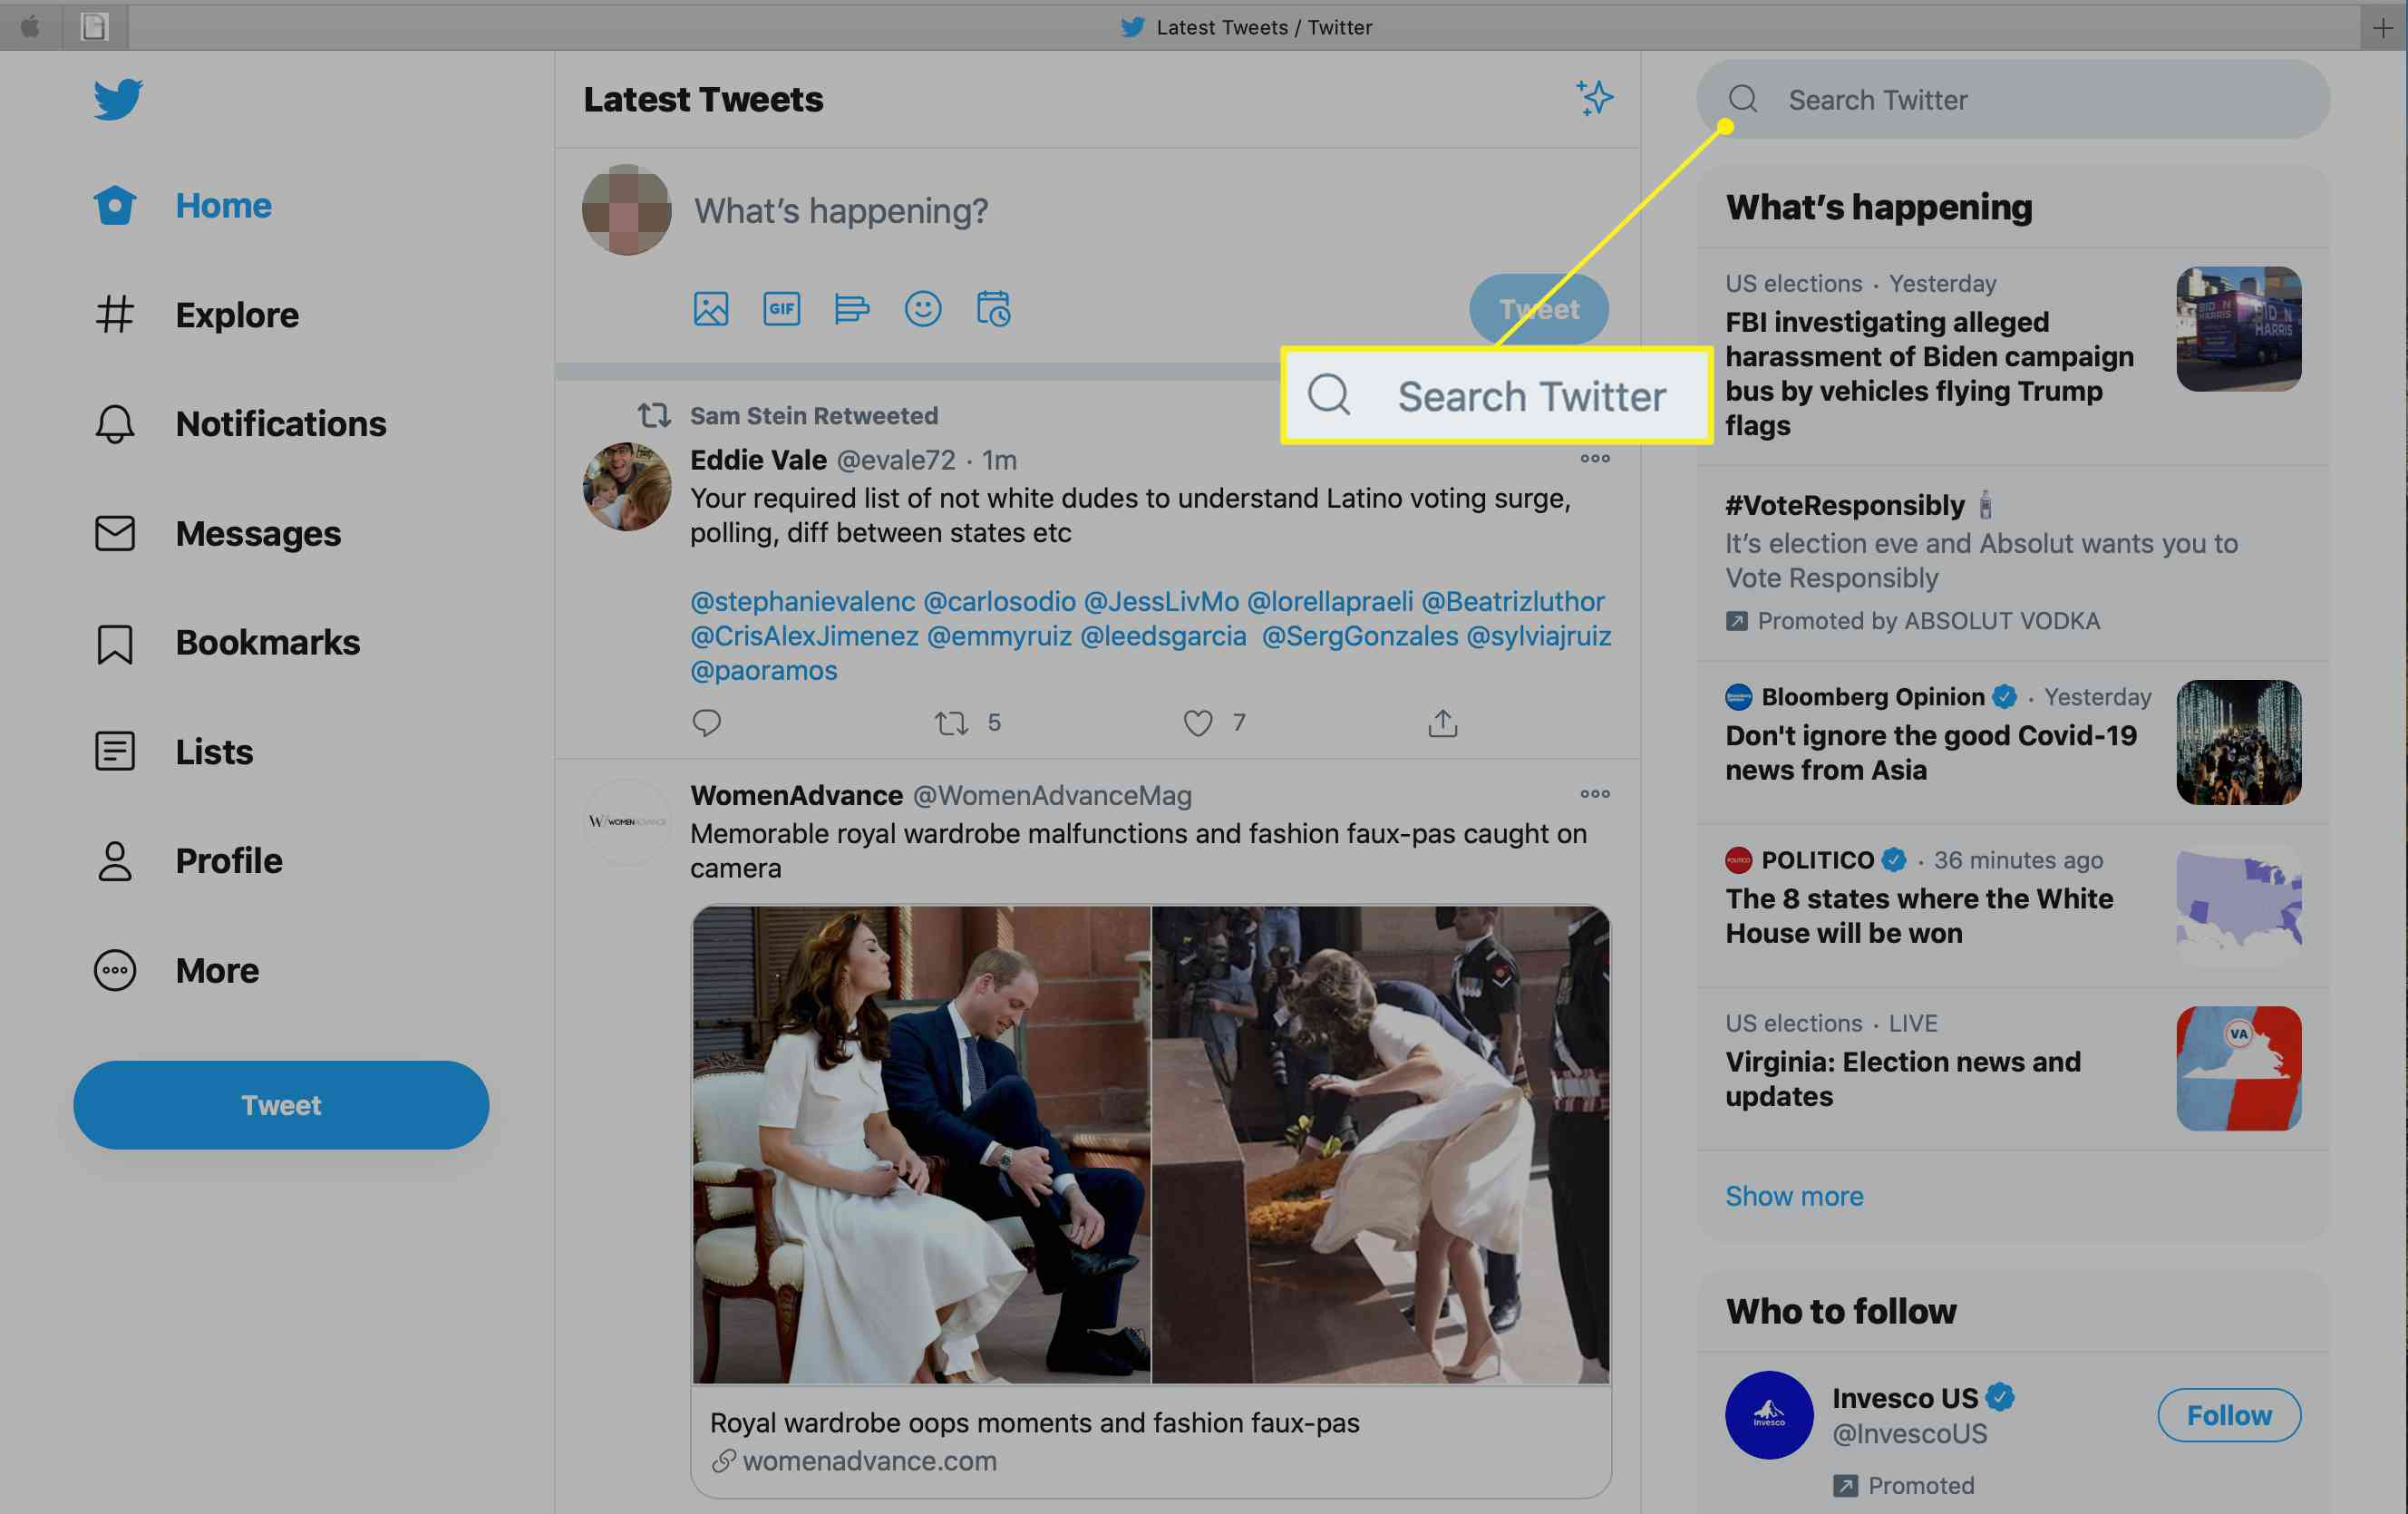 How to Search Twitter Images